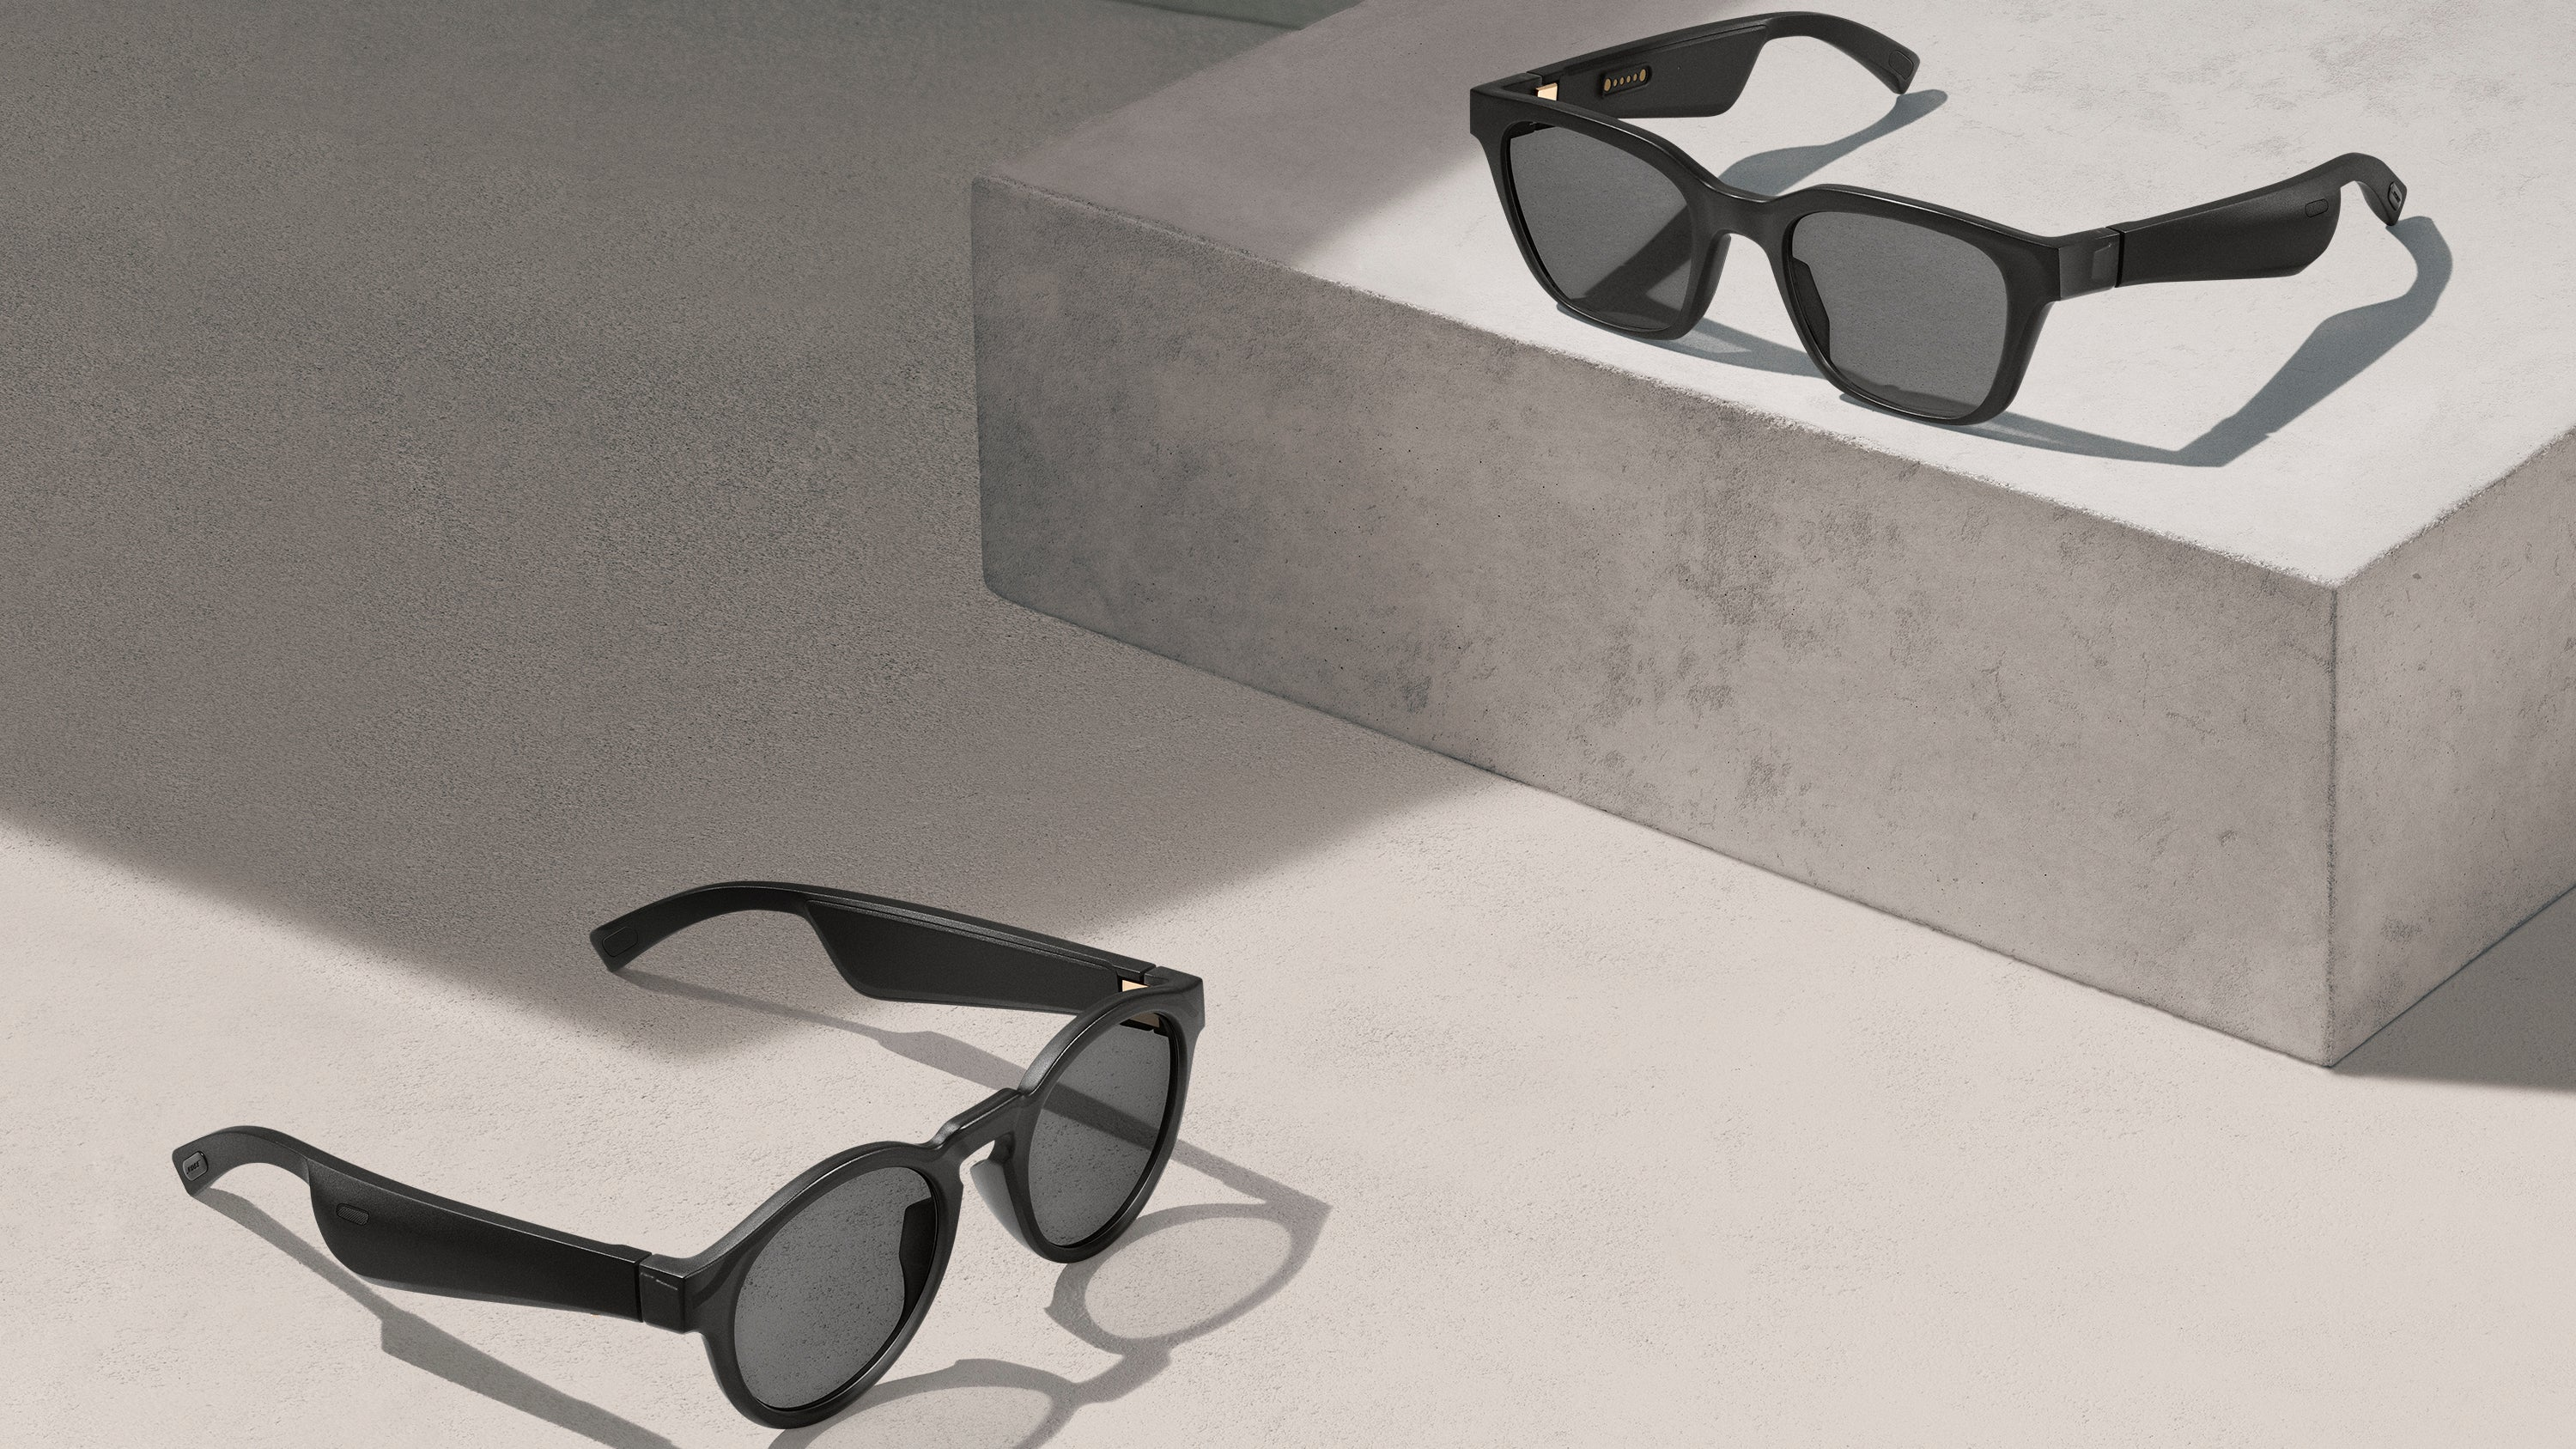 Bose Actually Turned Its Funky Sunglasses Headphones Concept Into A Real Gadget